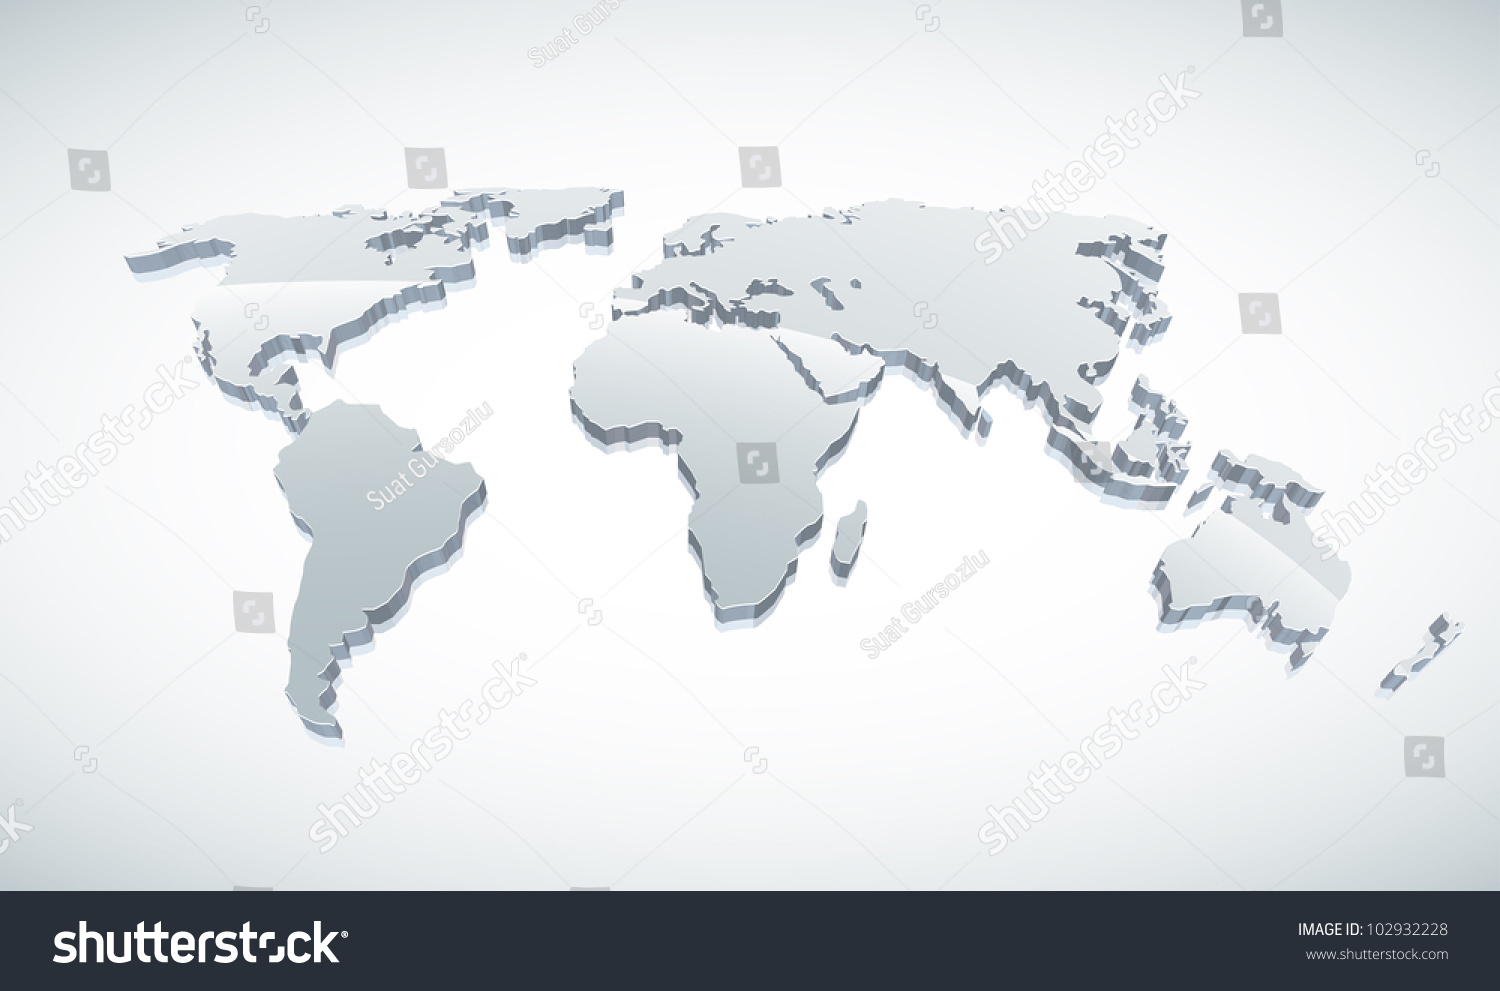 World map vector 3d 2018 images pictures world map 3d render 3d vector world map illustration 102932228 shutterstock world map vector 3d gumiabroncs Image collections